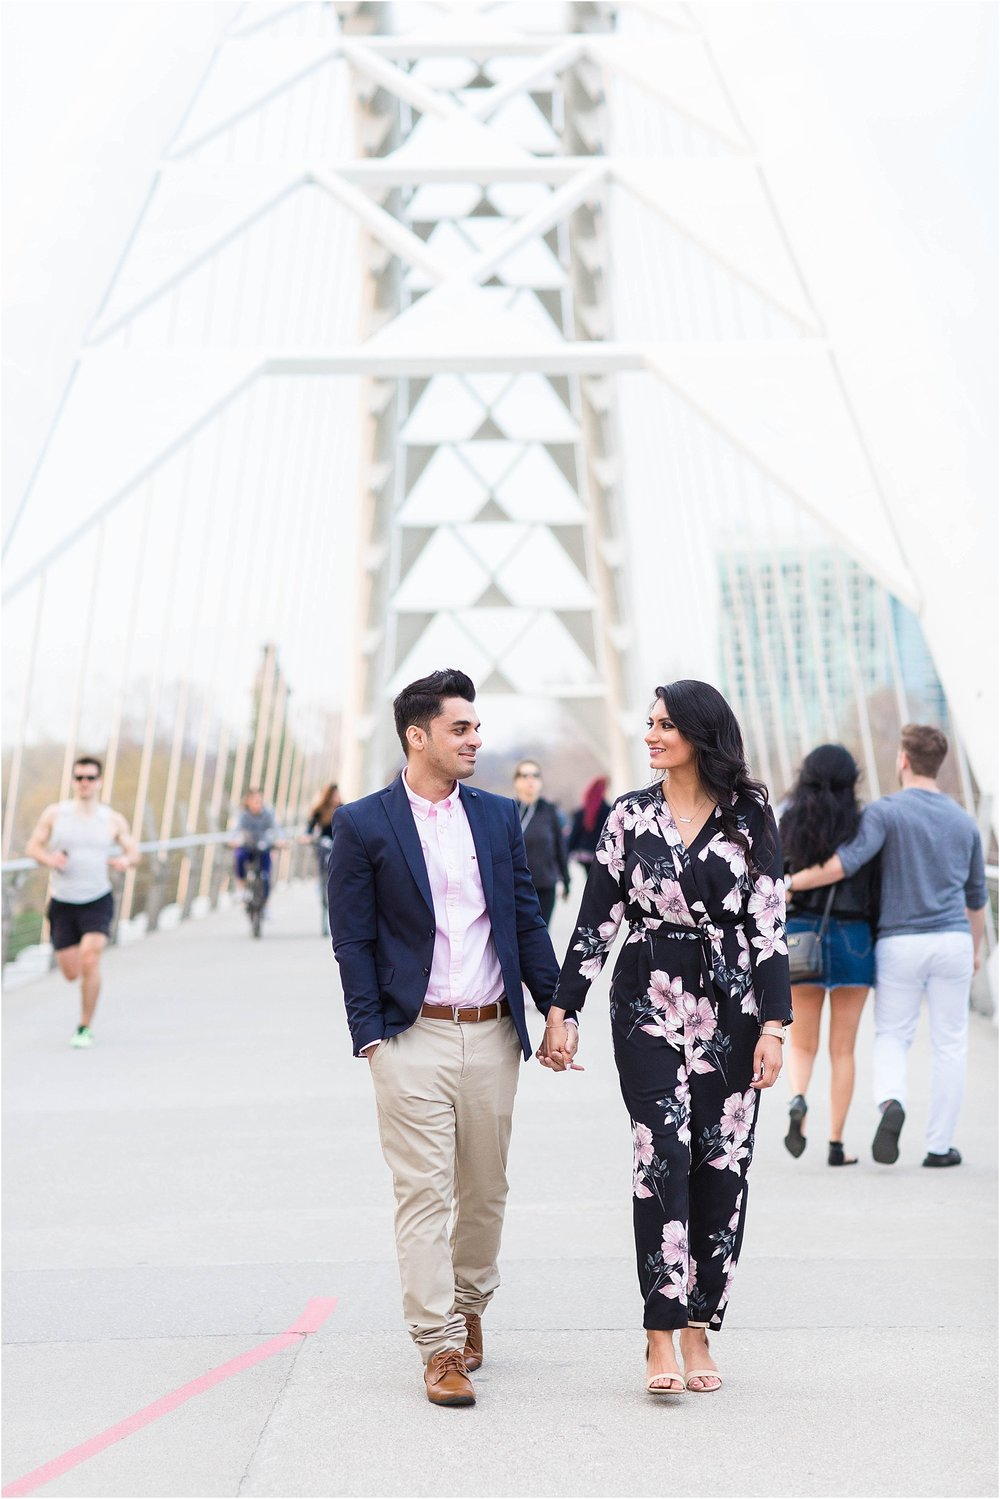 Ryerson-University-Humber-Bay-Bridge-Engagement-Session-Toronto-Mississauga-Brampton-Scarborough-GTA-Pakistani-Indian-Wedding-Engagement-Photographer-Photography_0032.jpg